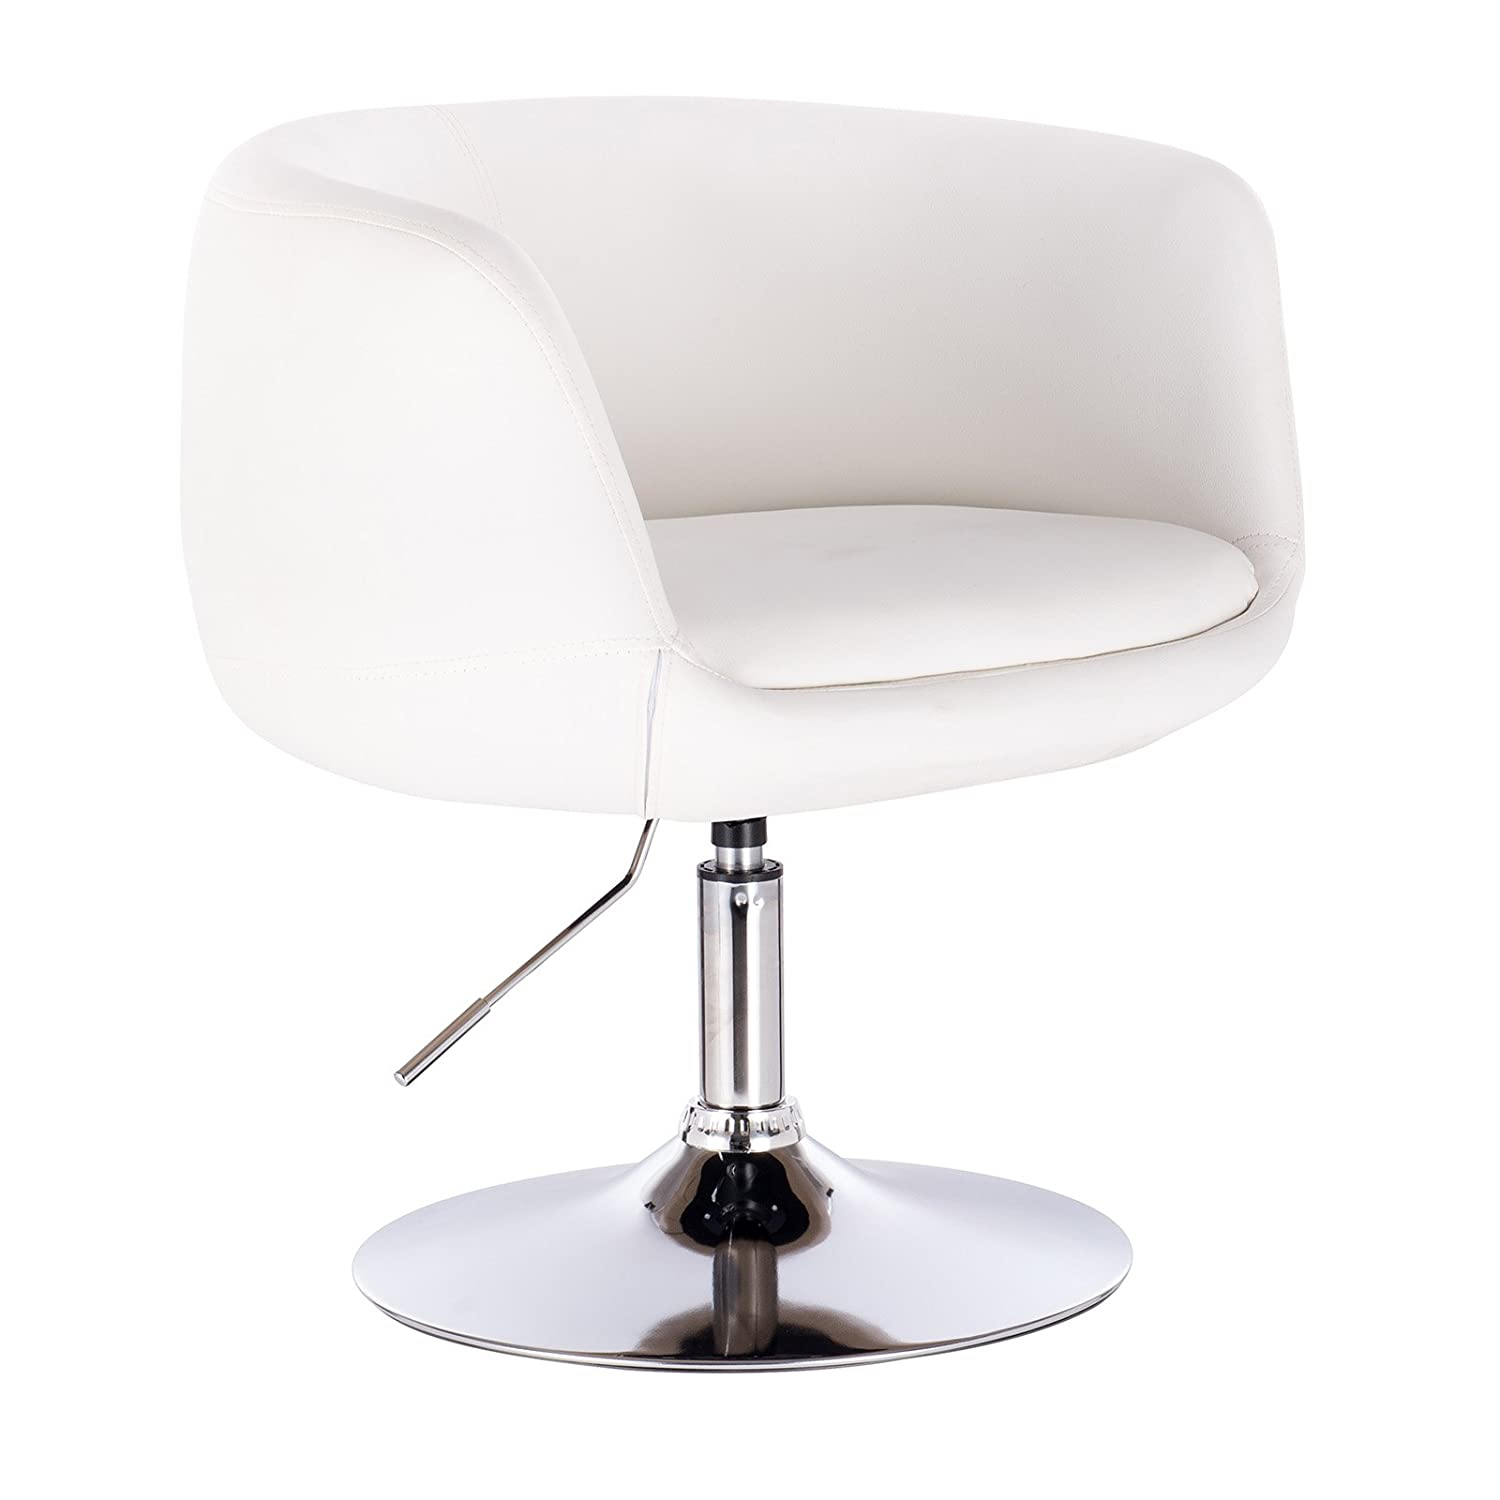 Woltu Bar Stool White Bar Chair Breakfast Dining Stool For Kitchen